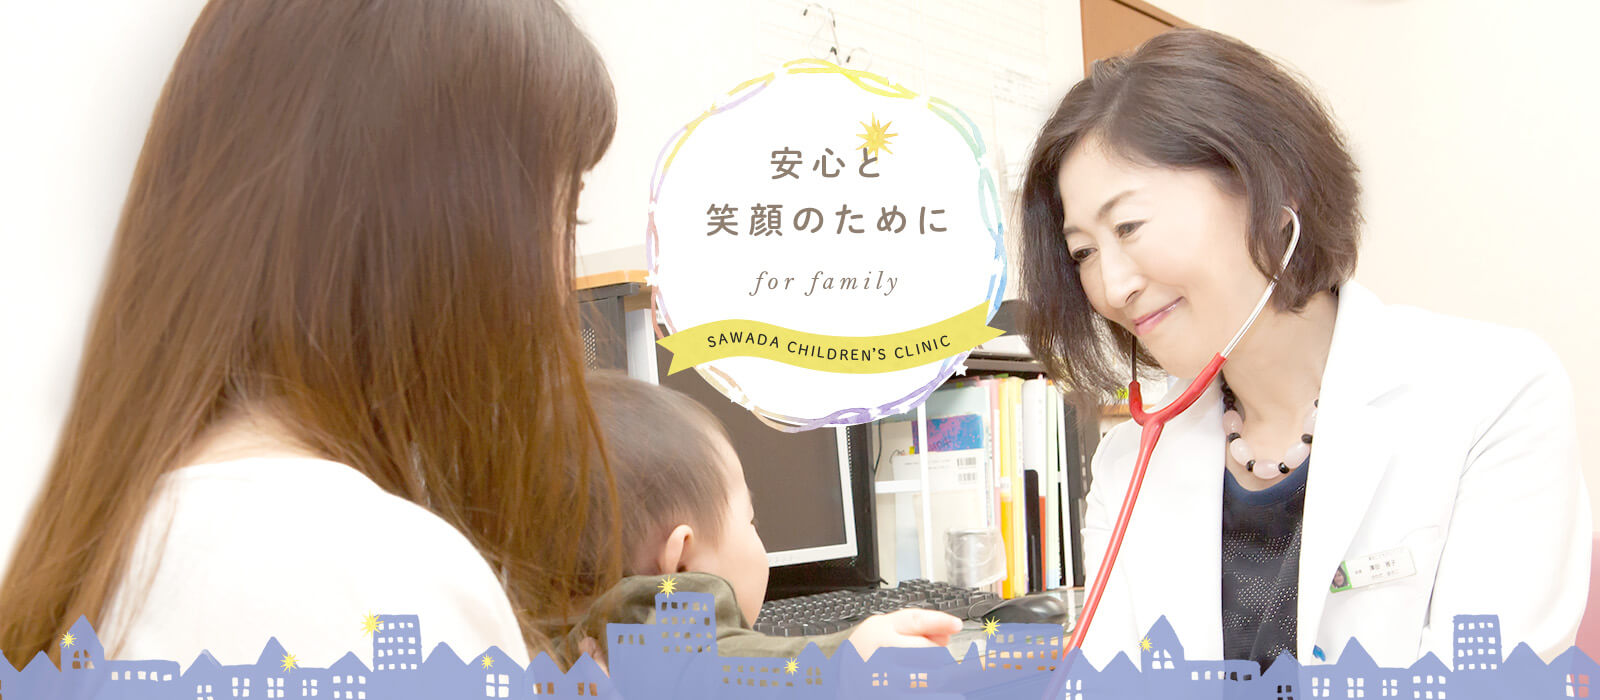 安心と笑顔のために for family SAWADA CHILDREN'S CLINIC